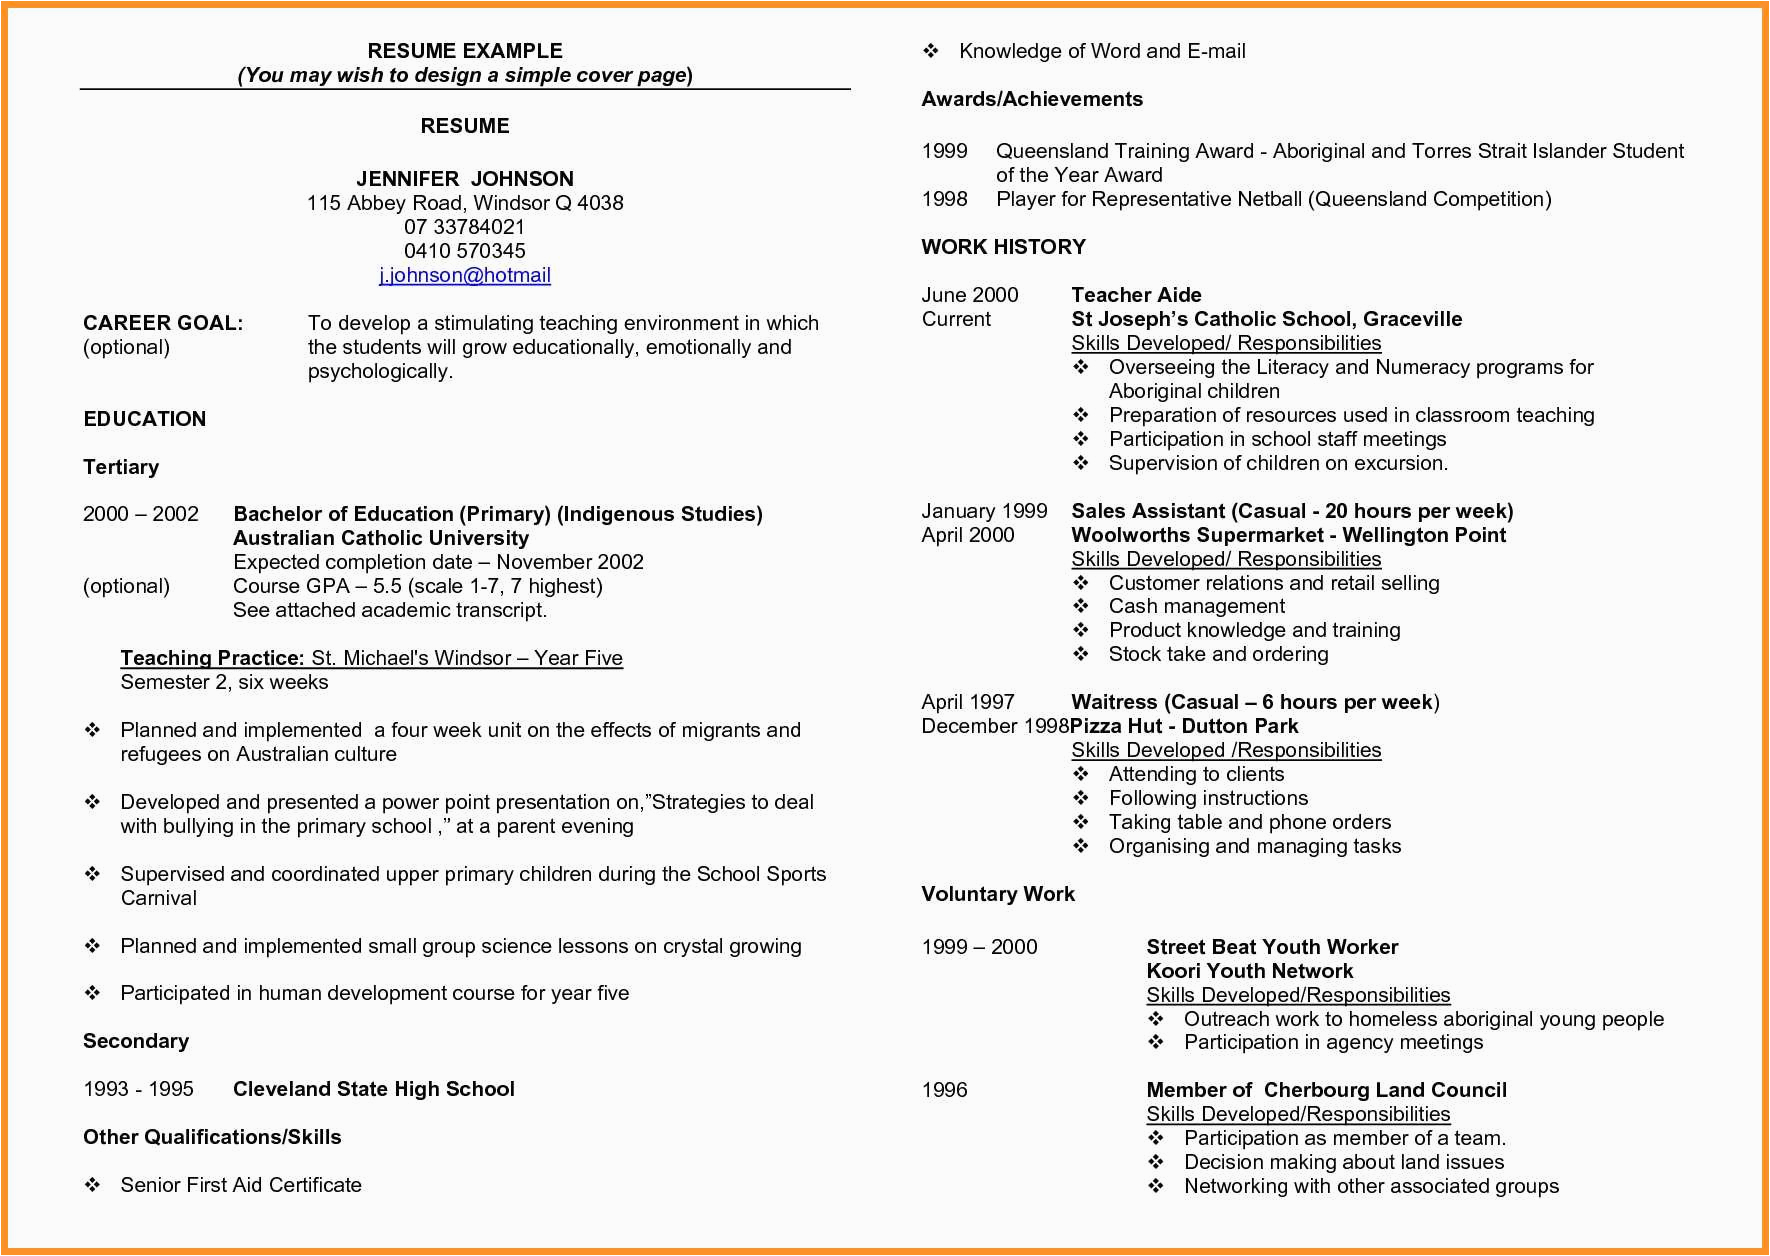 awards and achievements in resume